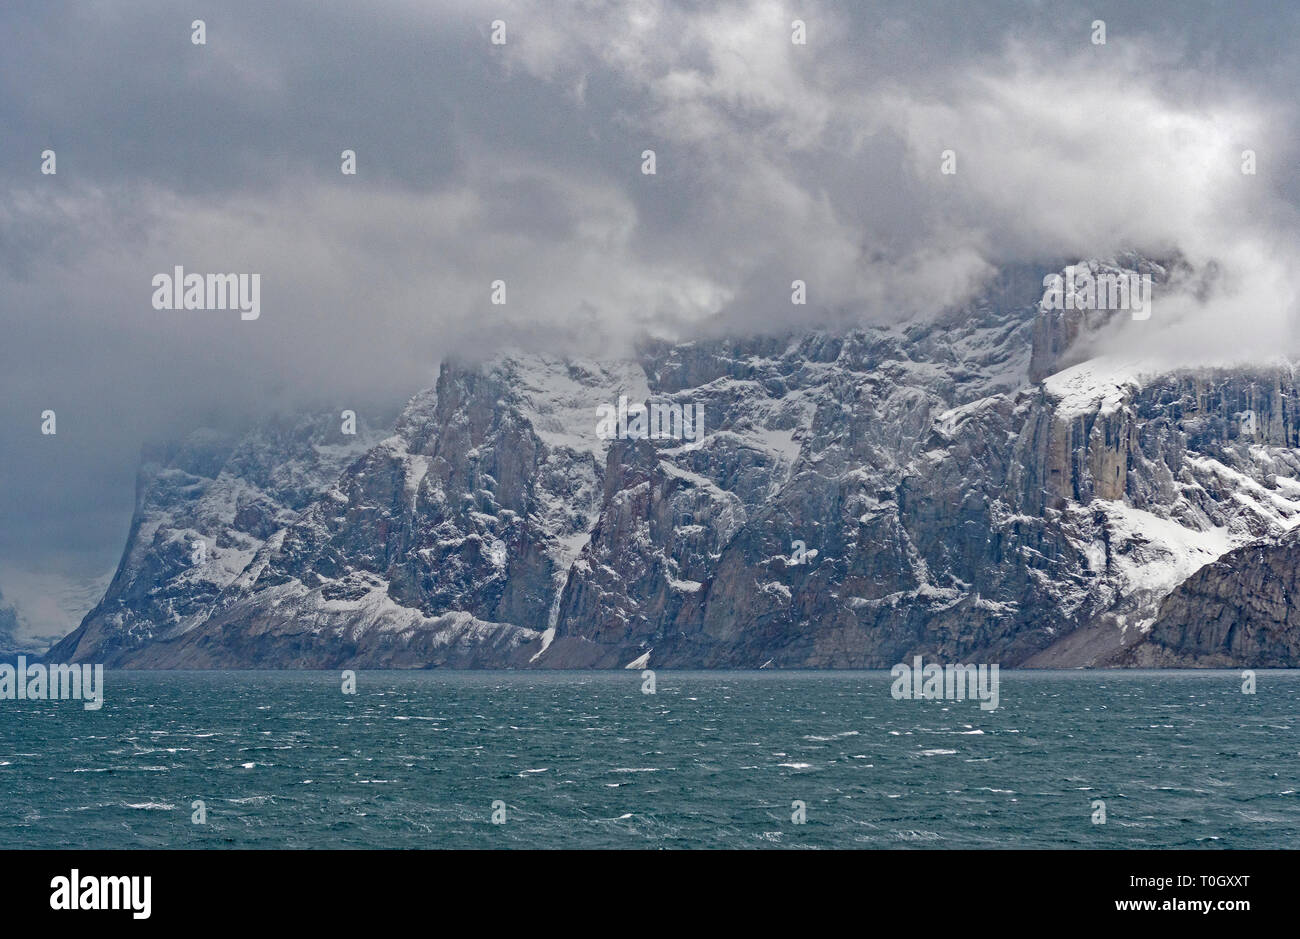 Stormy Clouds on Jagged Coastal Mountains along the Sam Ford Fjord on Baffin Island in Nunavut, Canada - Stock Image